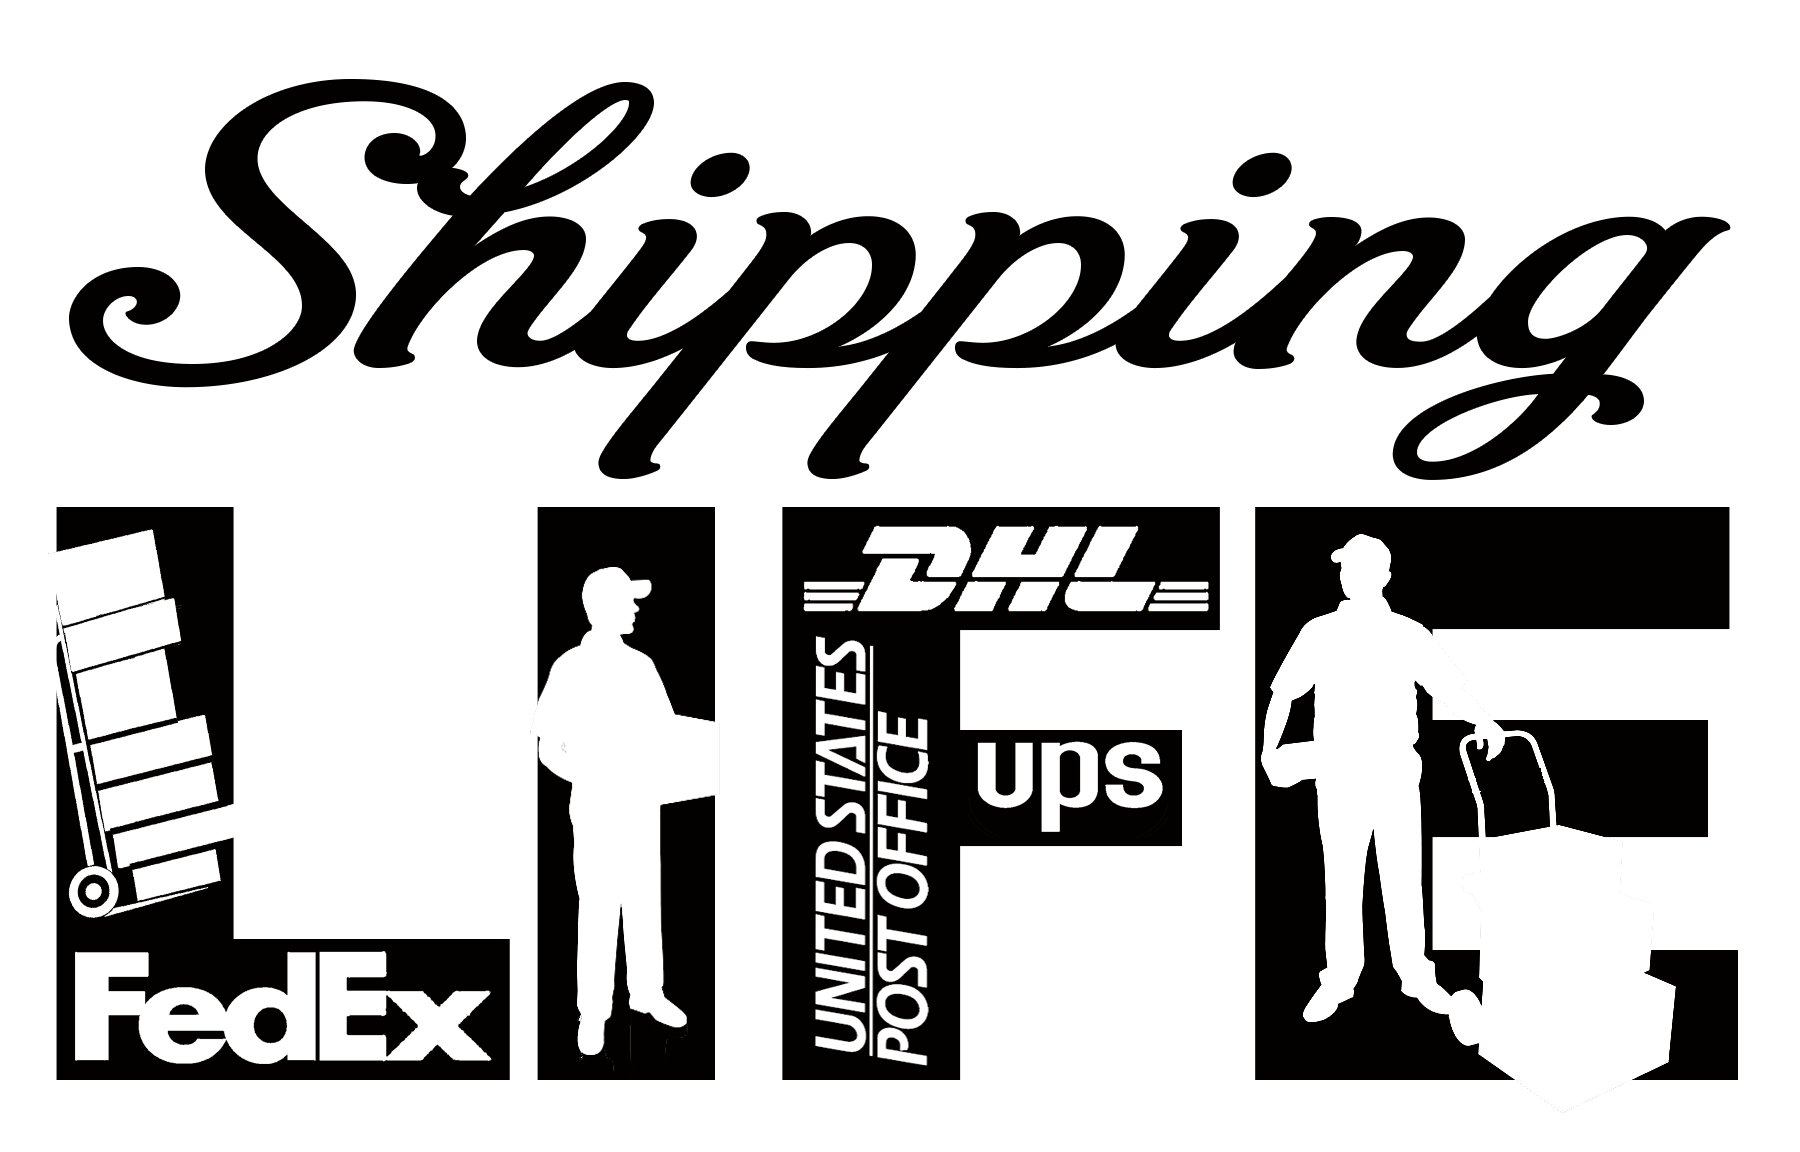 Free Shipping Life SVG File